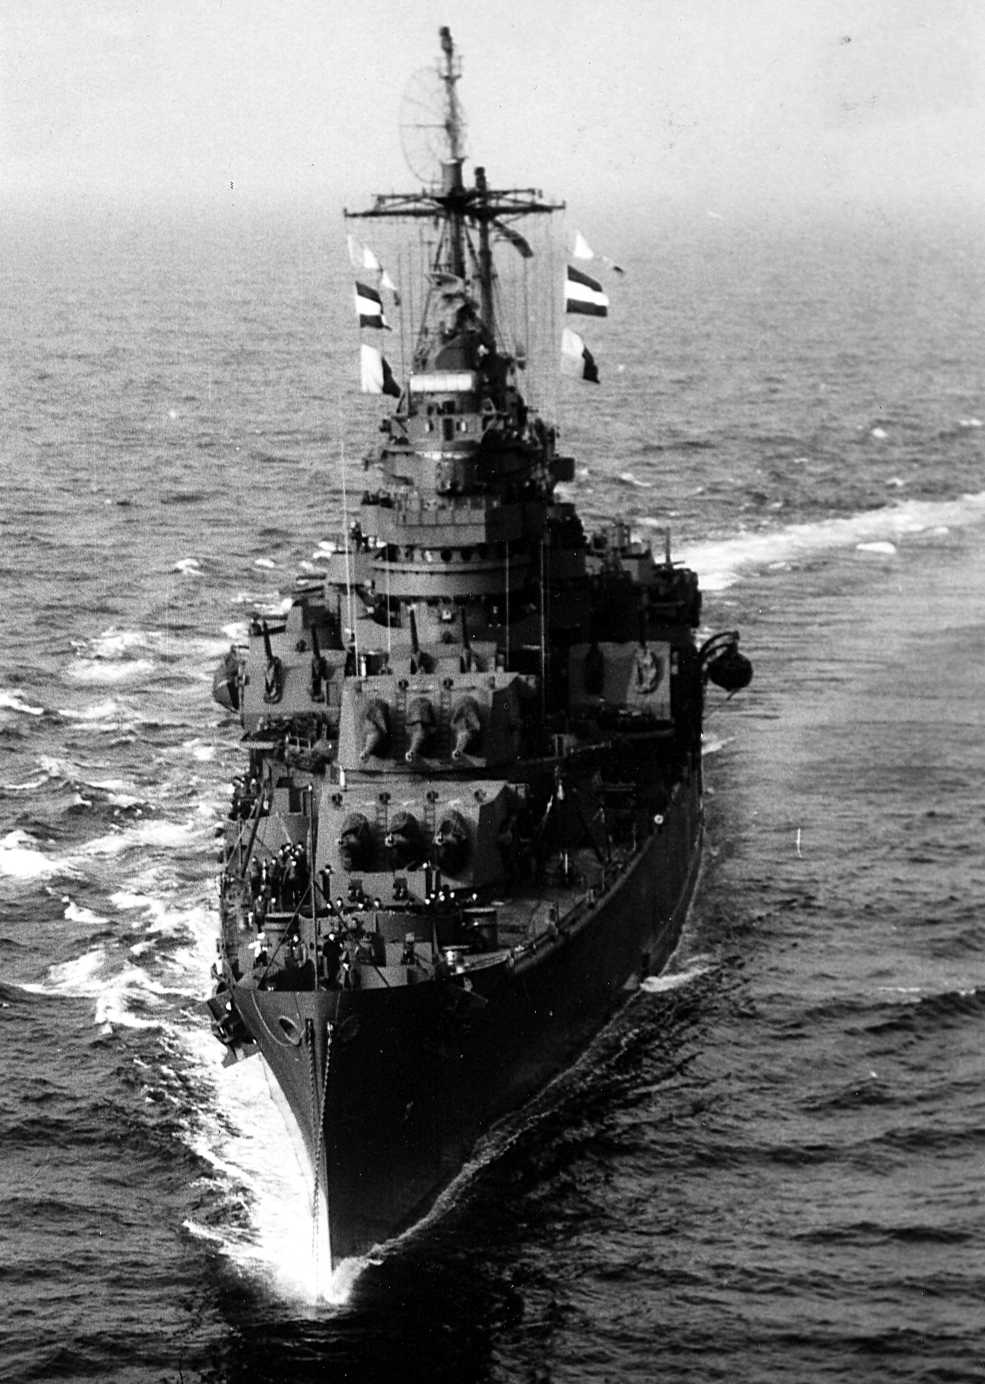 The 73 Best African Beautiful Images On Pinterest: Naval Warfare: USS Saint Paul (CA-73